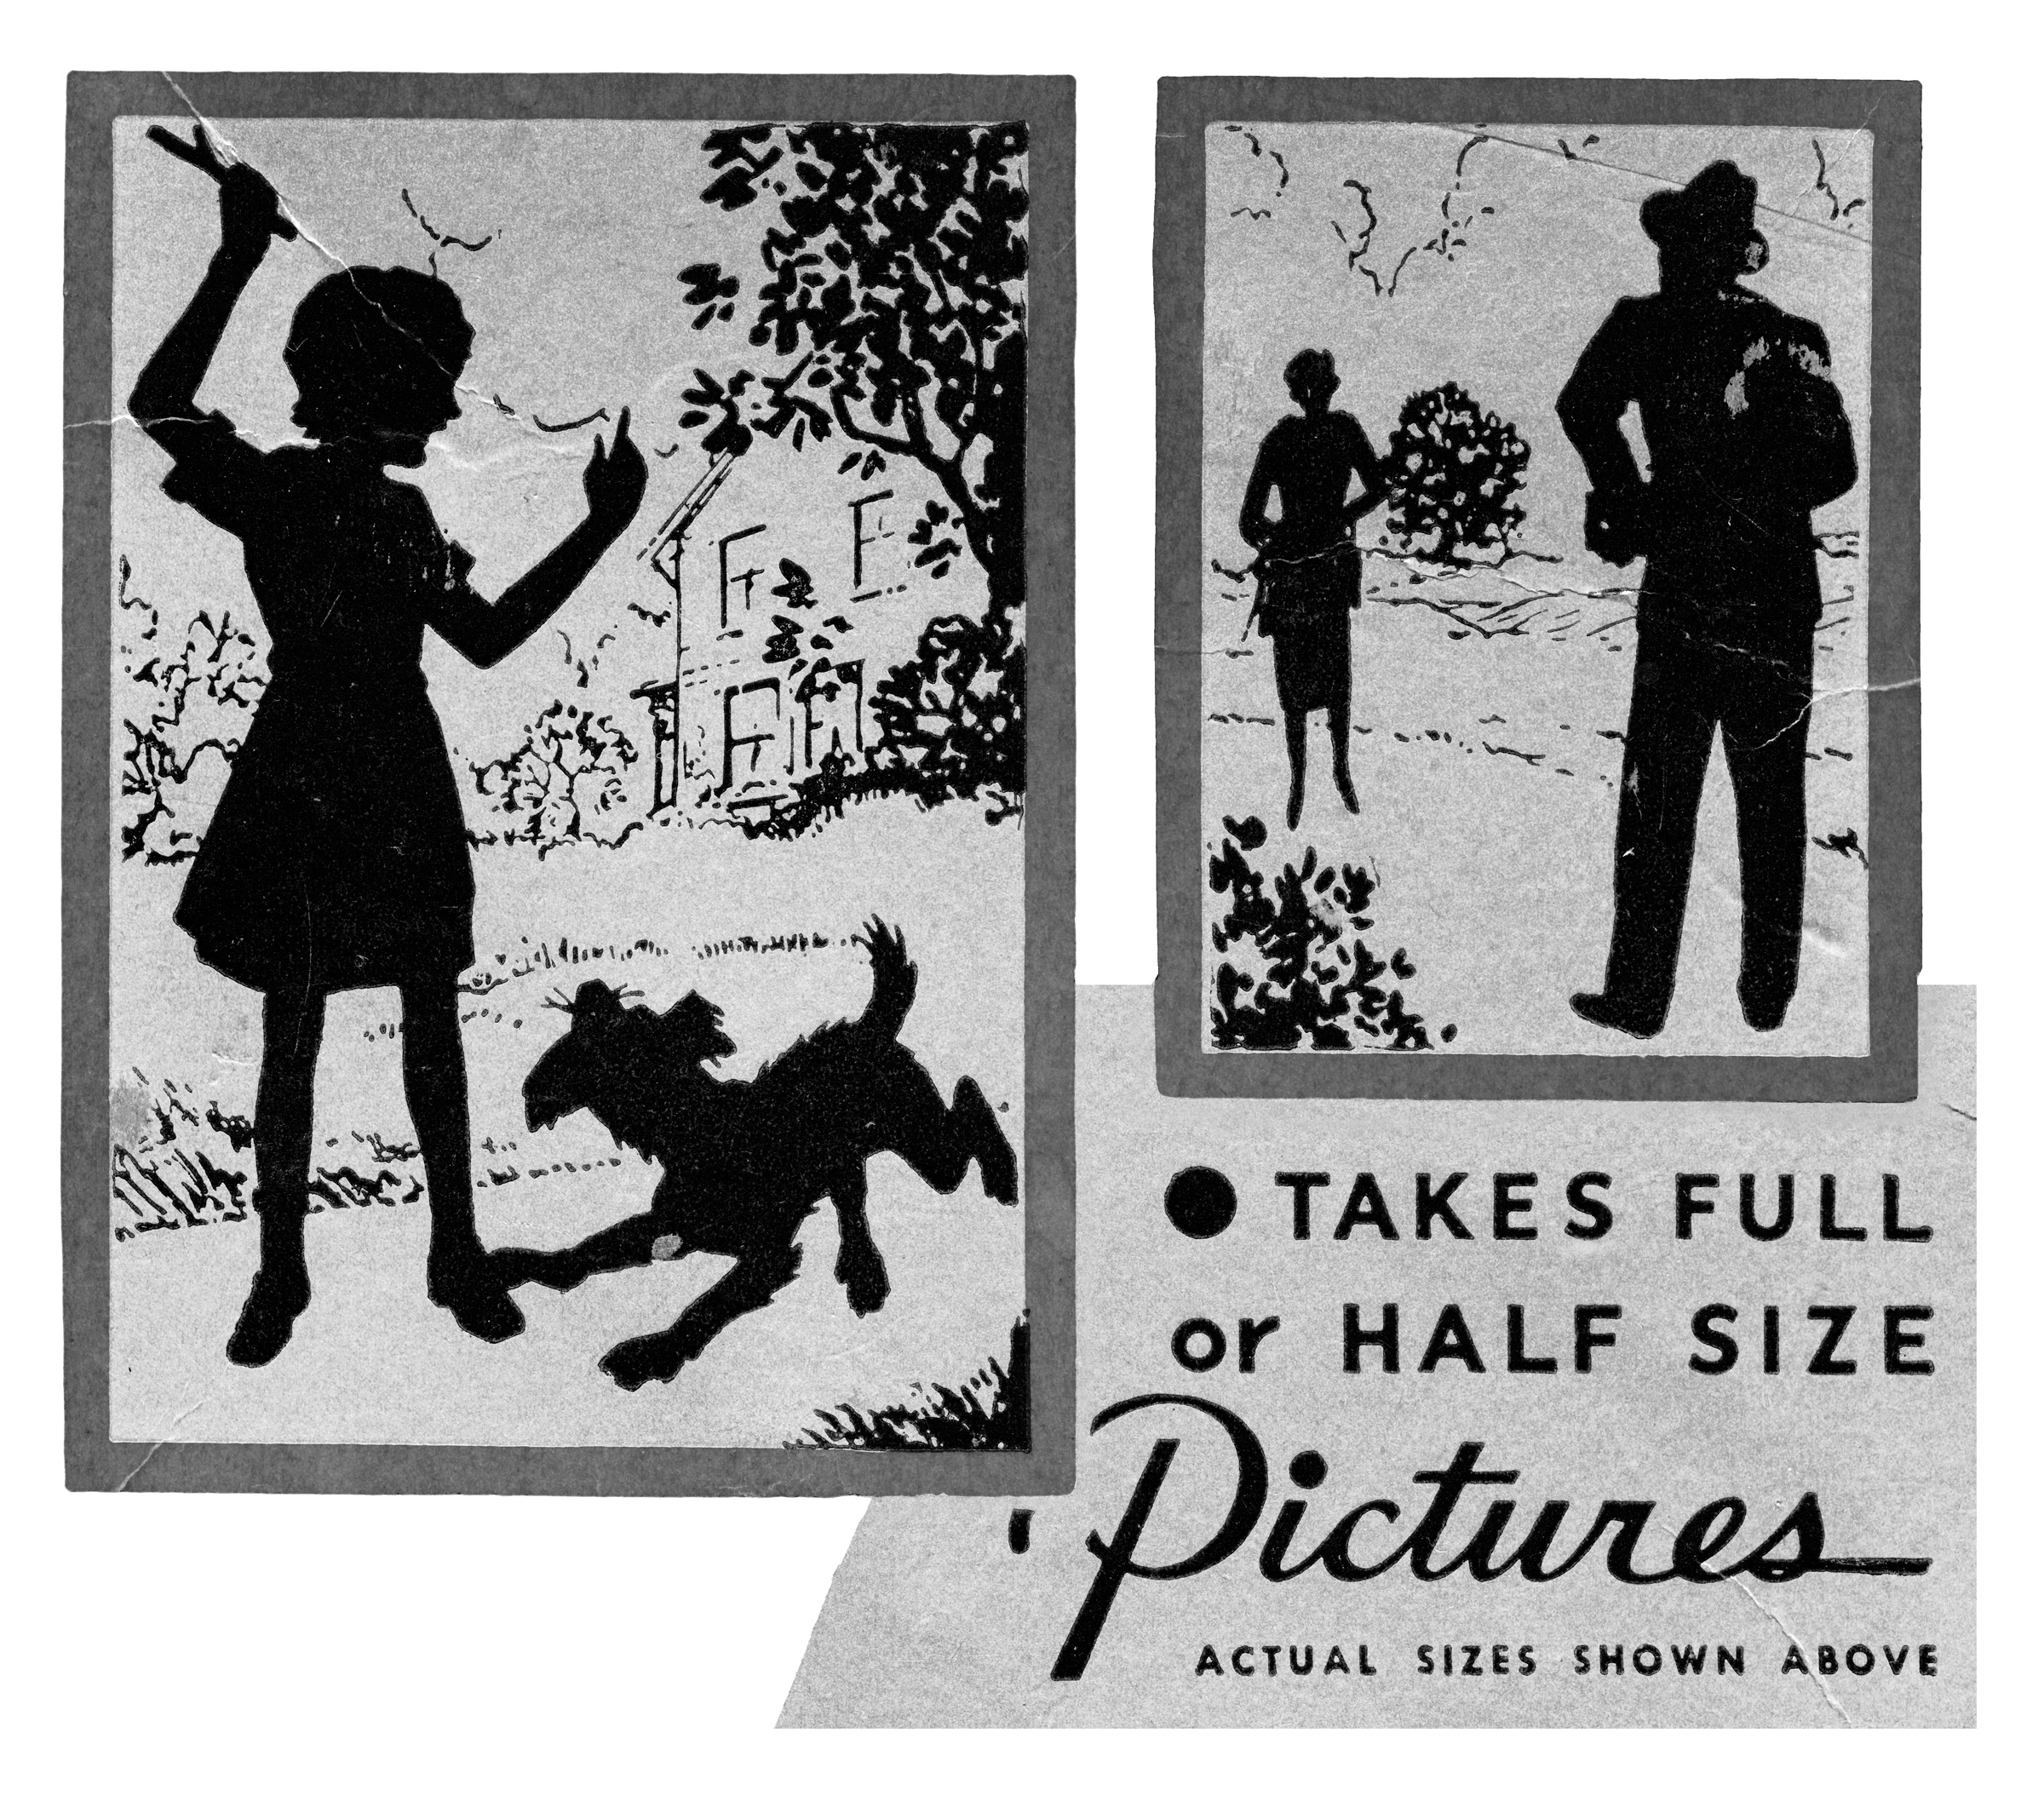 fig. 1 & 2   Graphics from original boxfor Agfa Ansco Shur-Shot camera model that offers both 6x9 and 6x4.5 options.